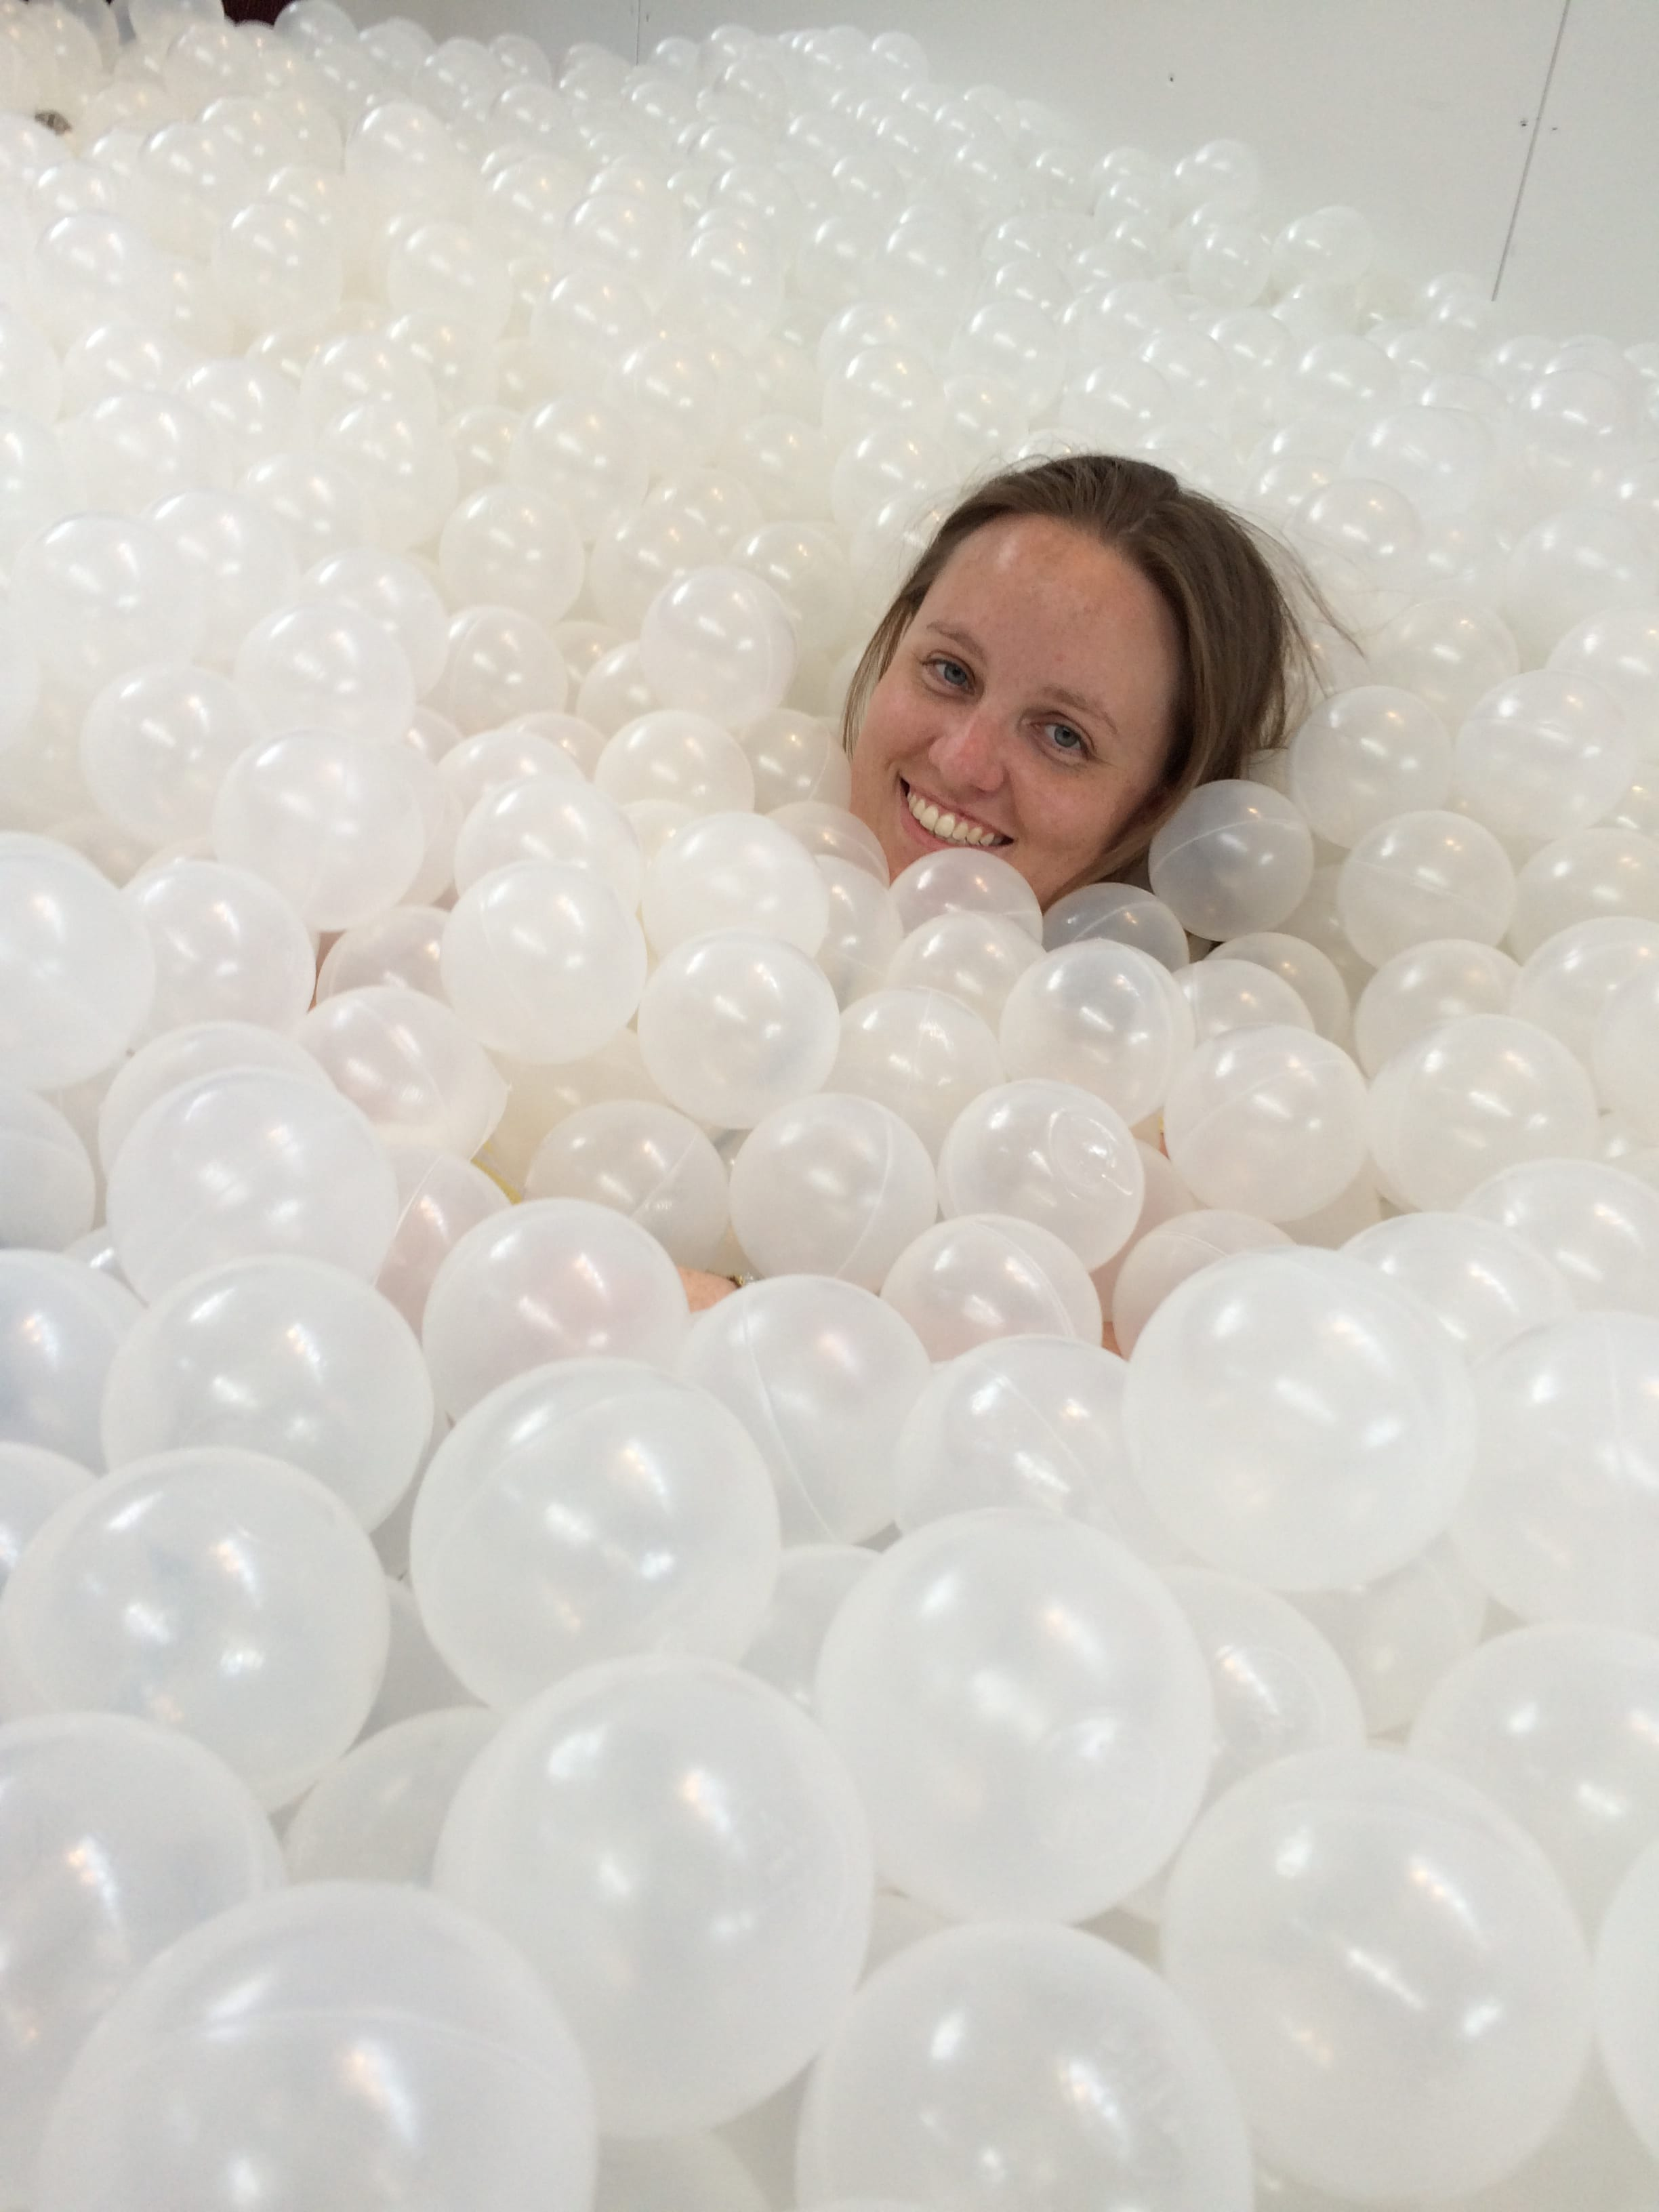 D.C. intern learns ball pits are for adults, too